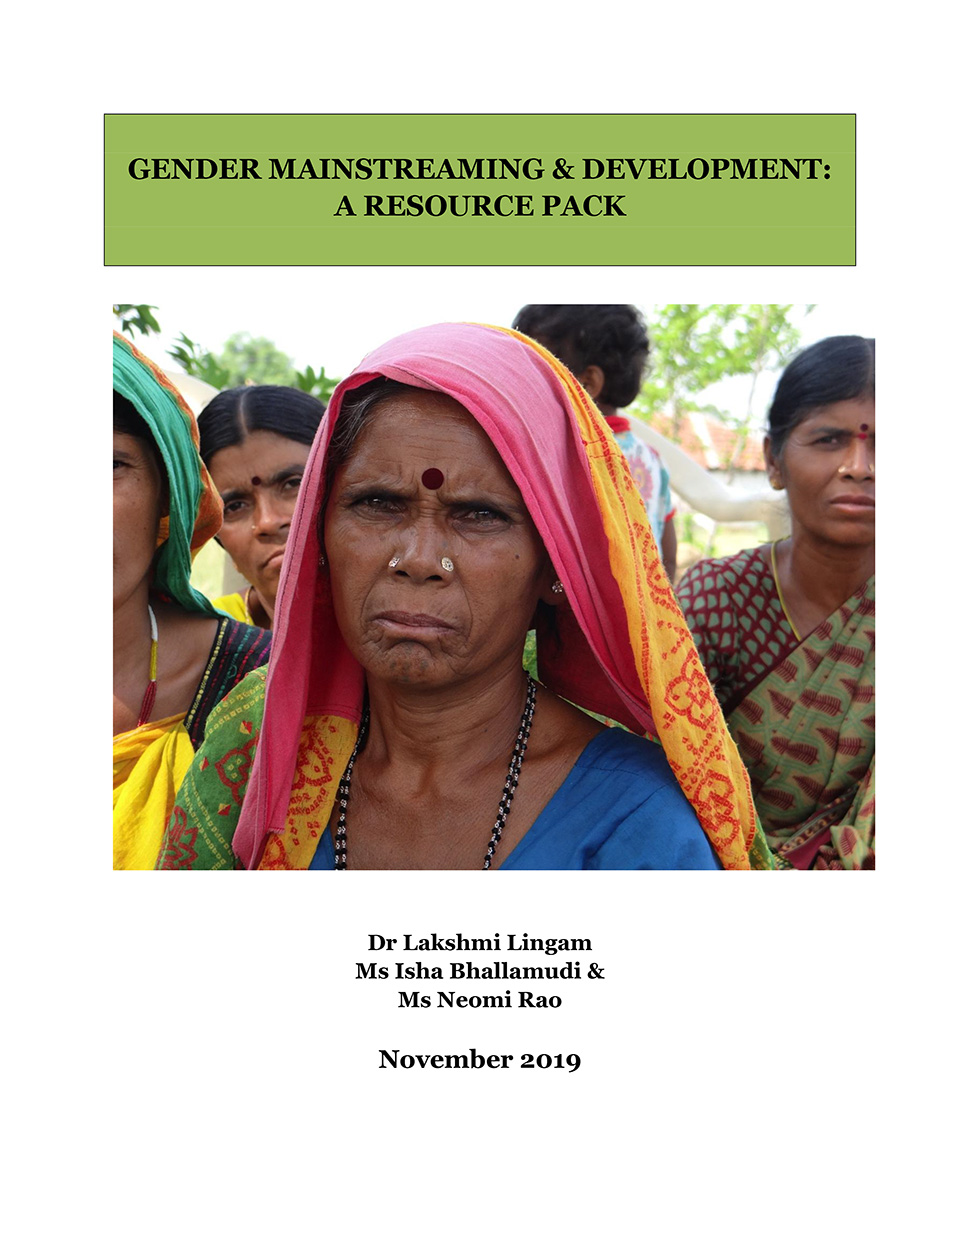 Gender mainstreaming & development: A resource pack